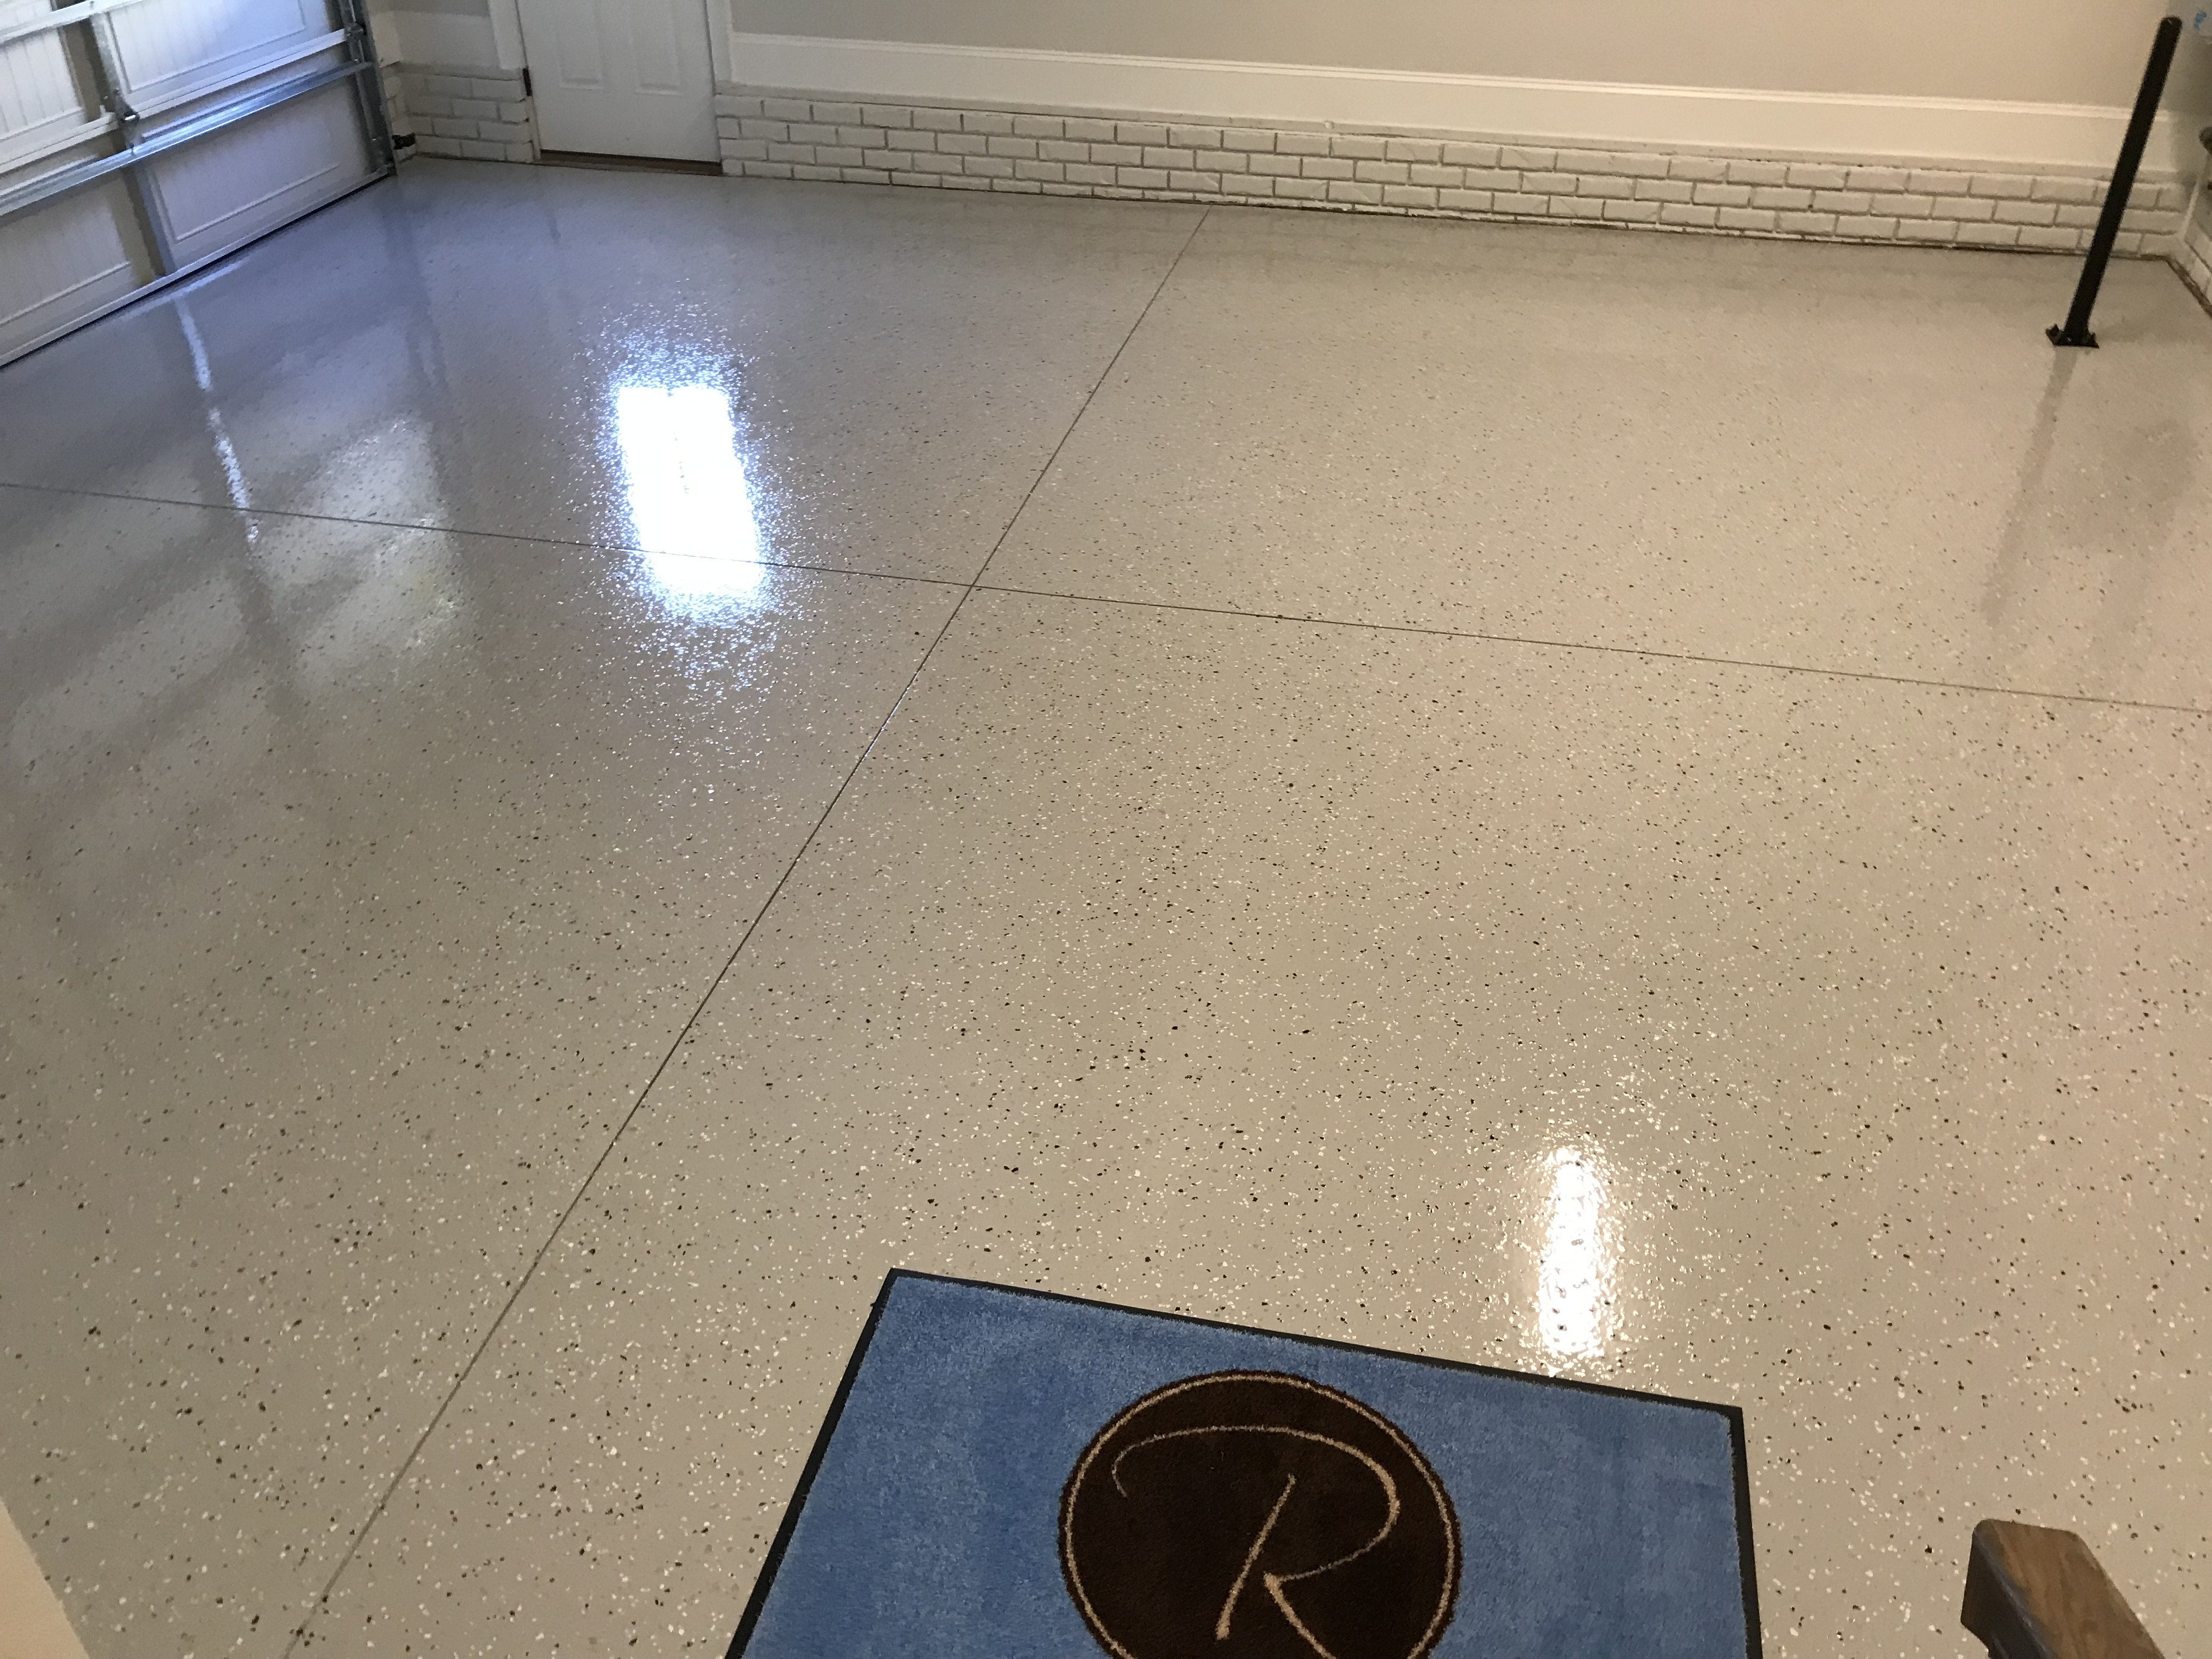 <div class='meta'><div class='origin-logo' data-origin='none'></div><span class='caption-text' data-credit='WTVD photo/Shawn Replogle'>Finished garage floor - 6502 New Market Way, Raleigh</span></div>